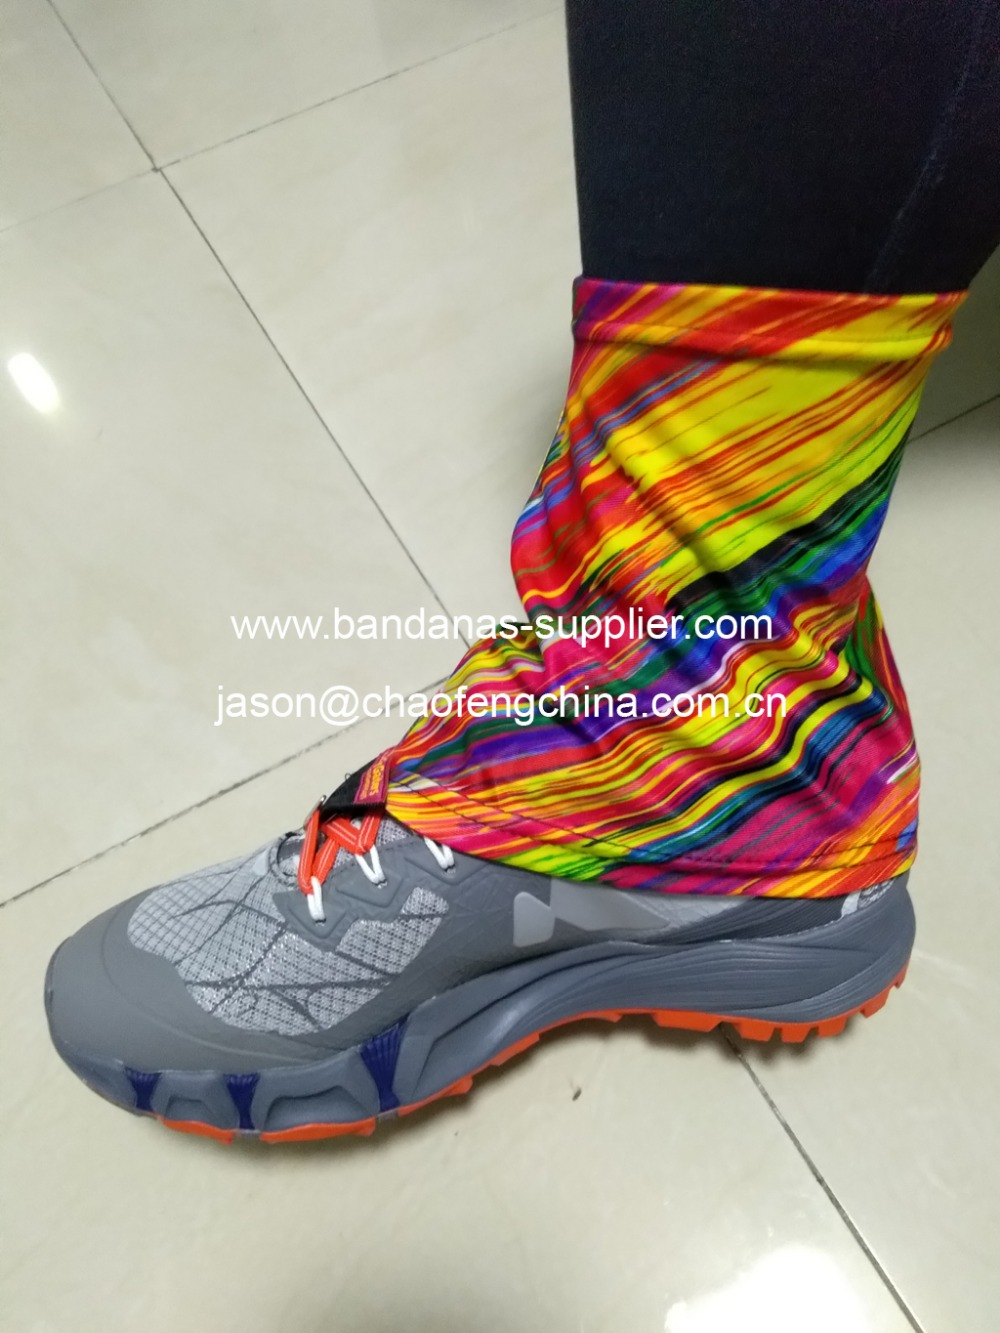 e4ffca388b0b Customise logo printed Trail boot Gaiter for you outdoor hiking ...